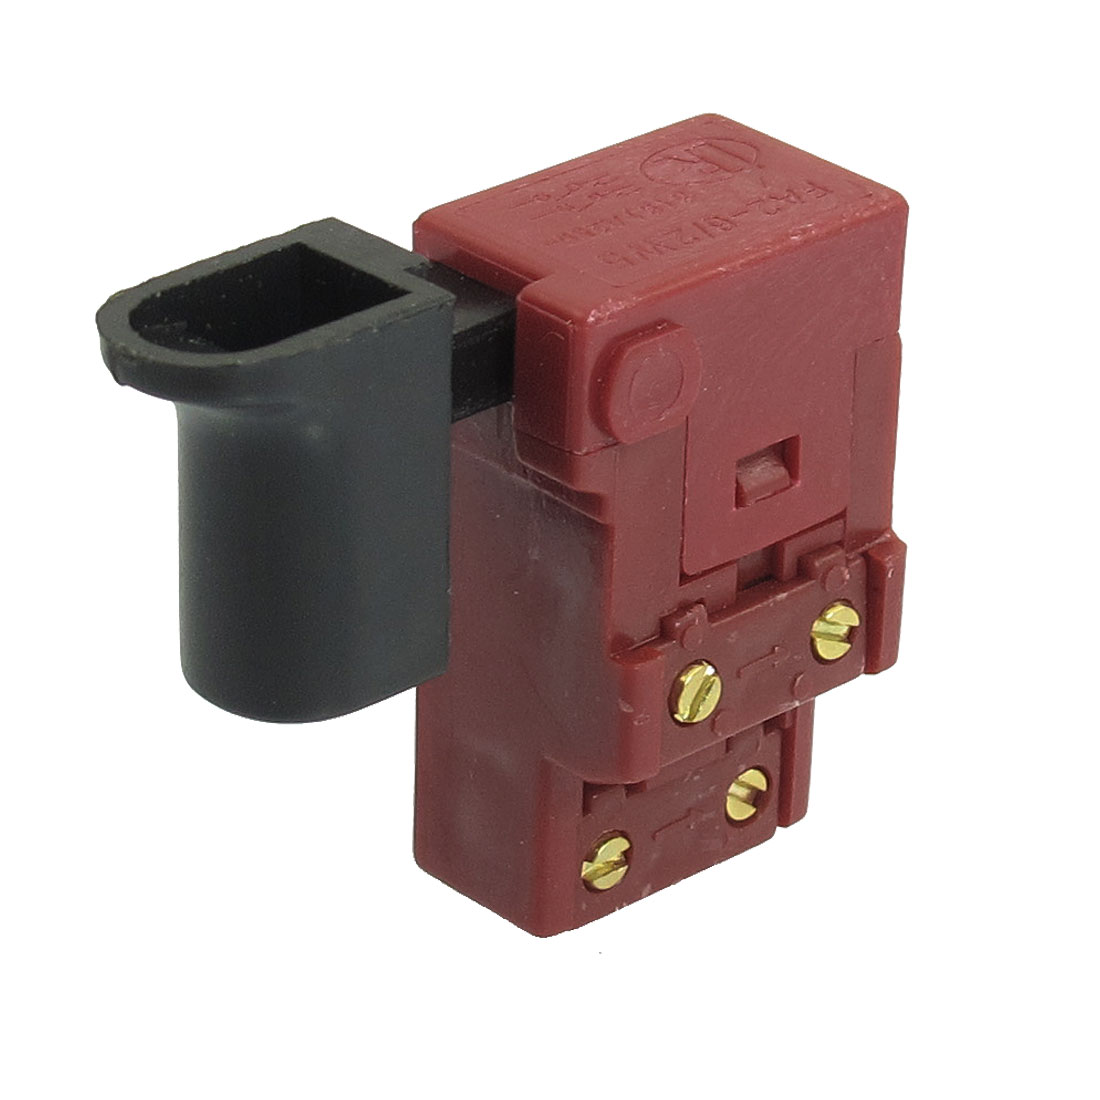 AC 250V 6A DPST Non Lock Trigger Switch for Dragon Electric Hammer